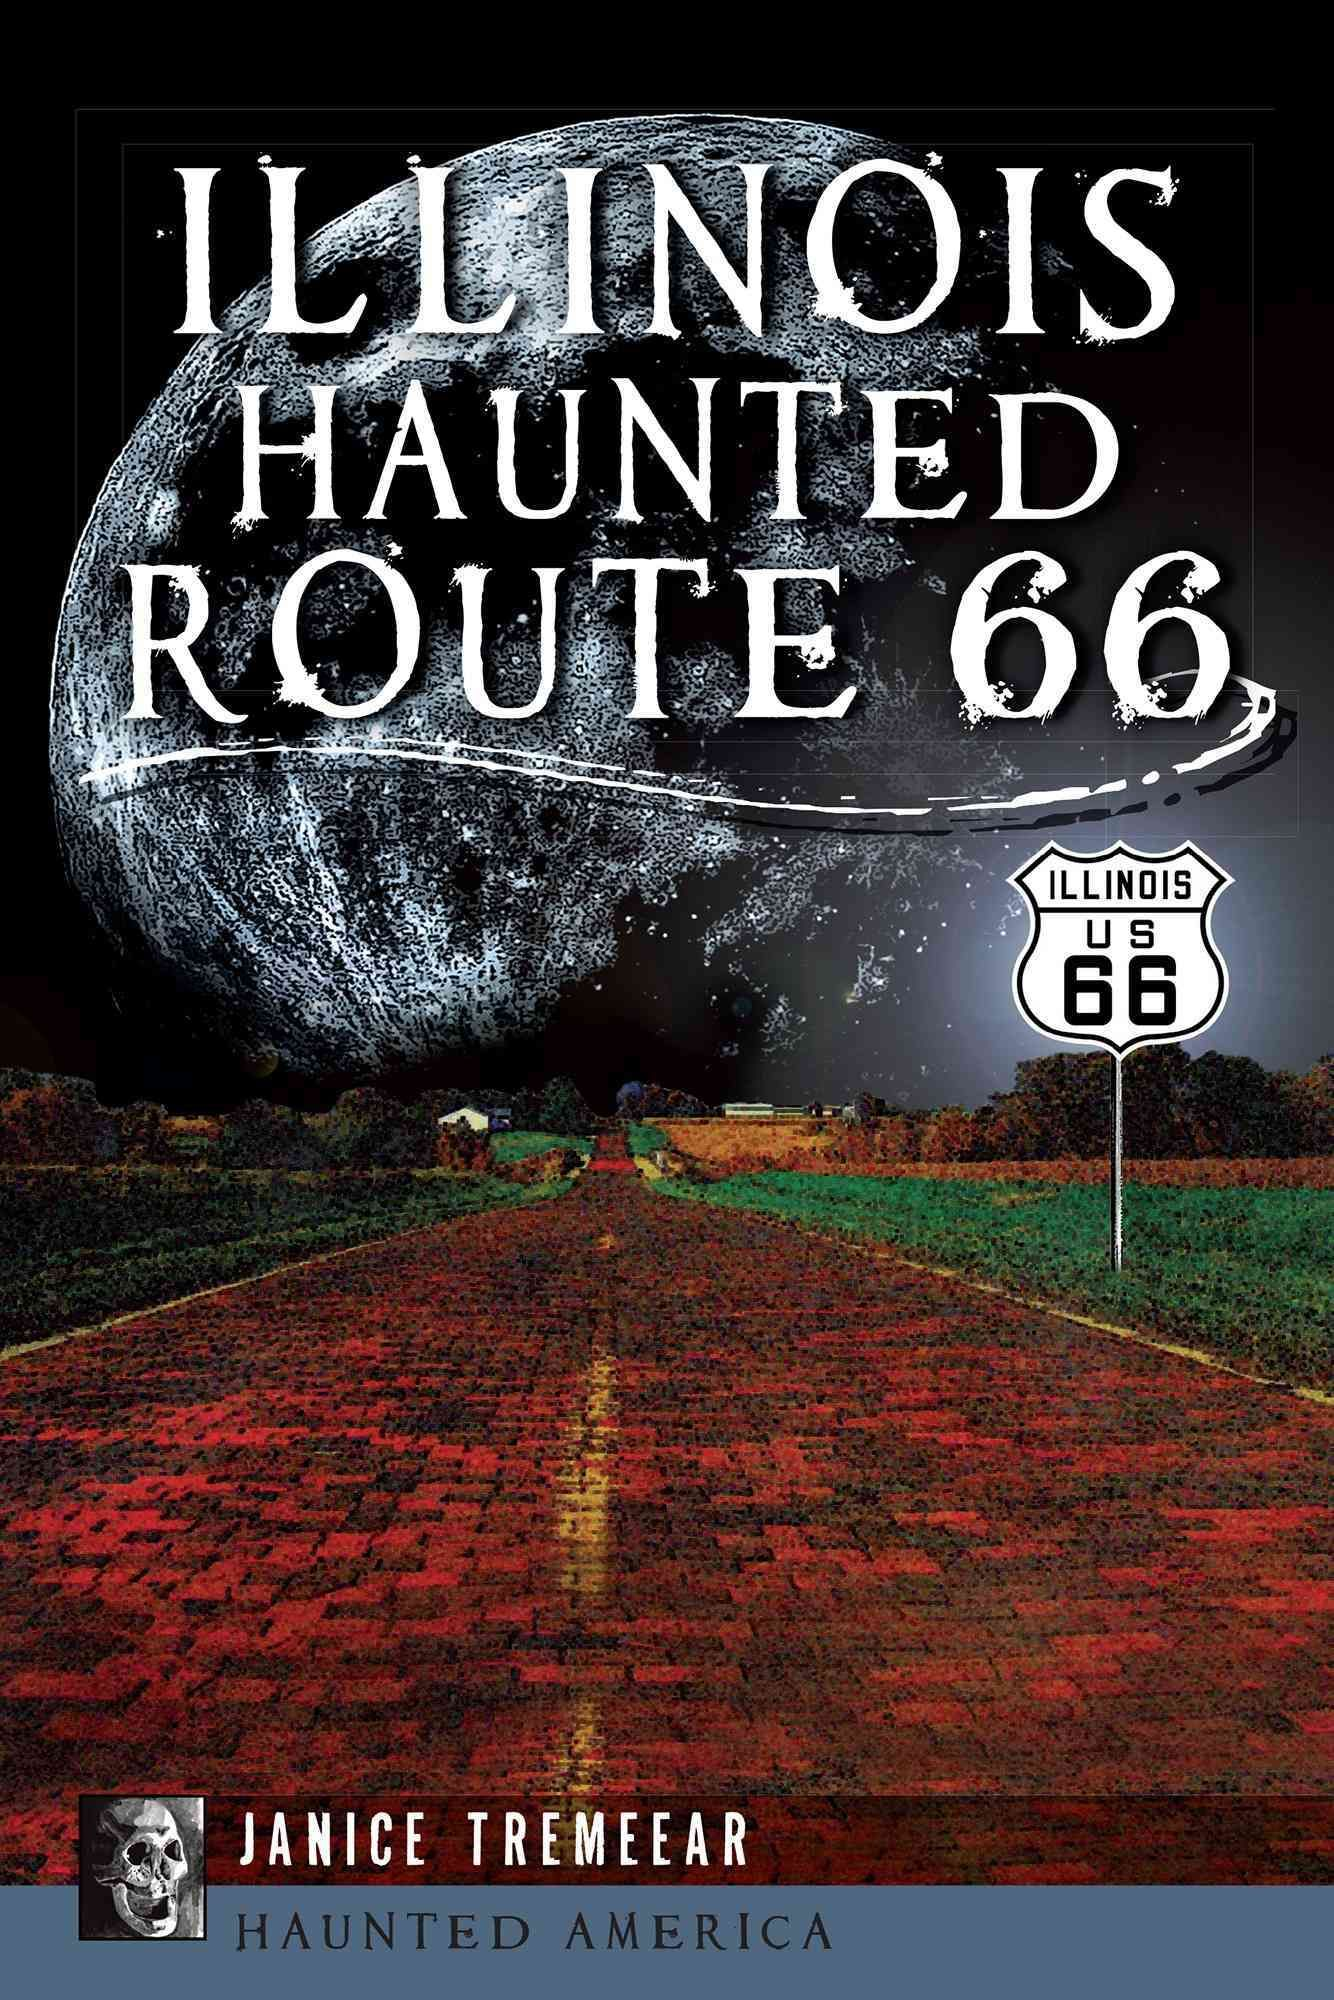 explore the most haunted sites and famous ghosts of historic route